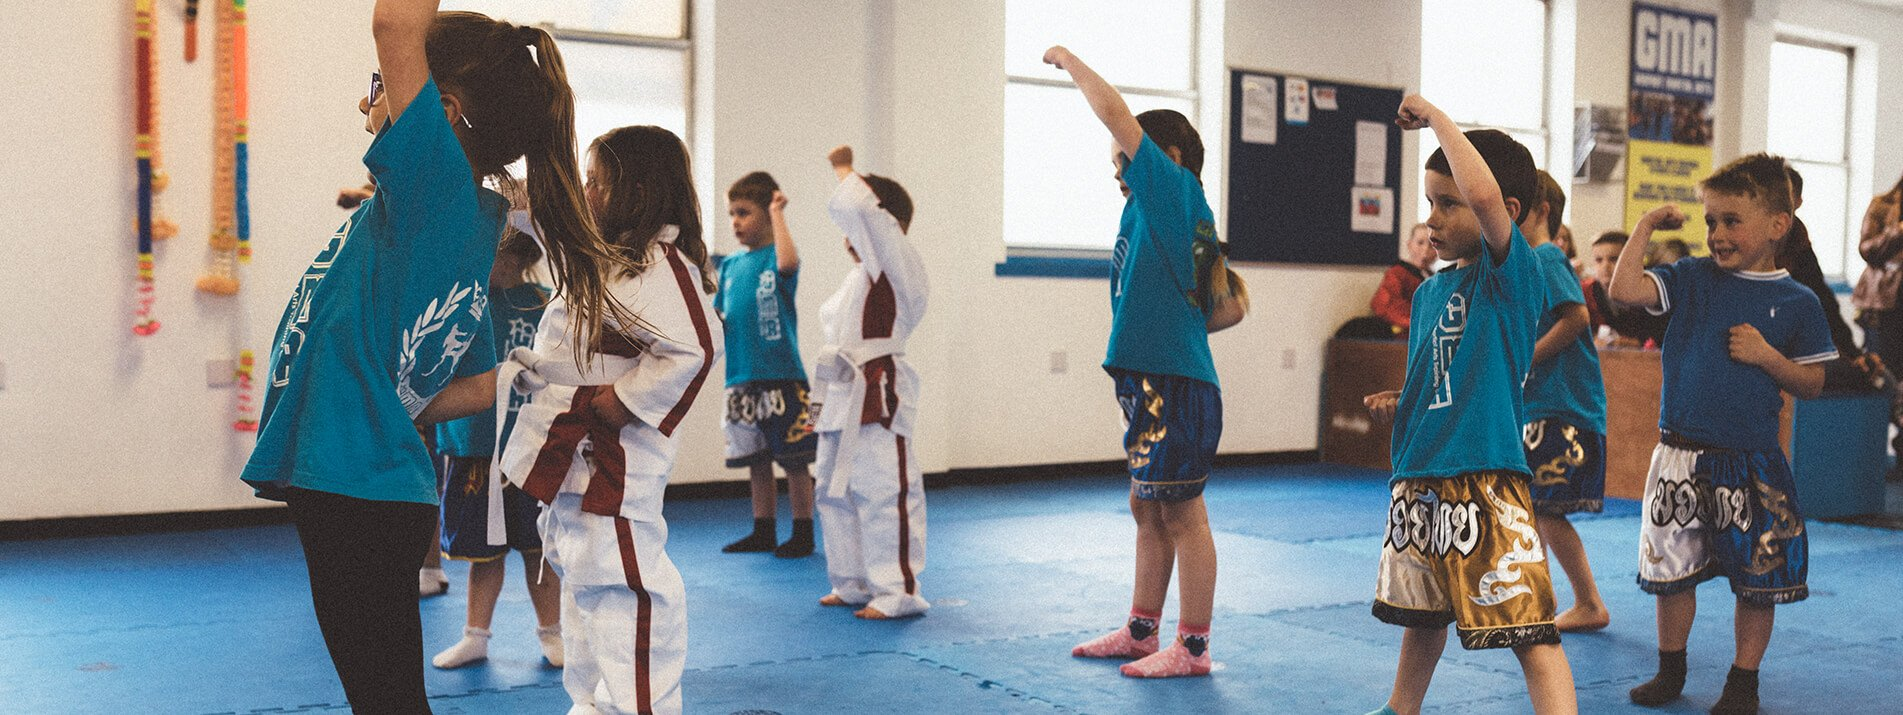 gosport martial arts kids classes